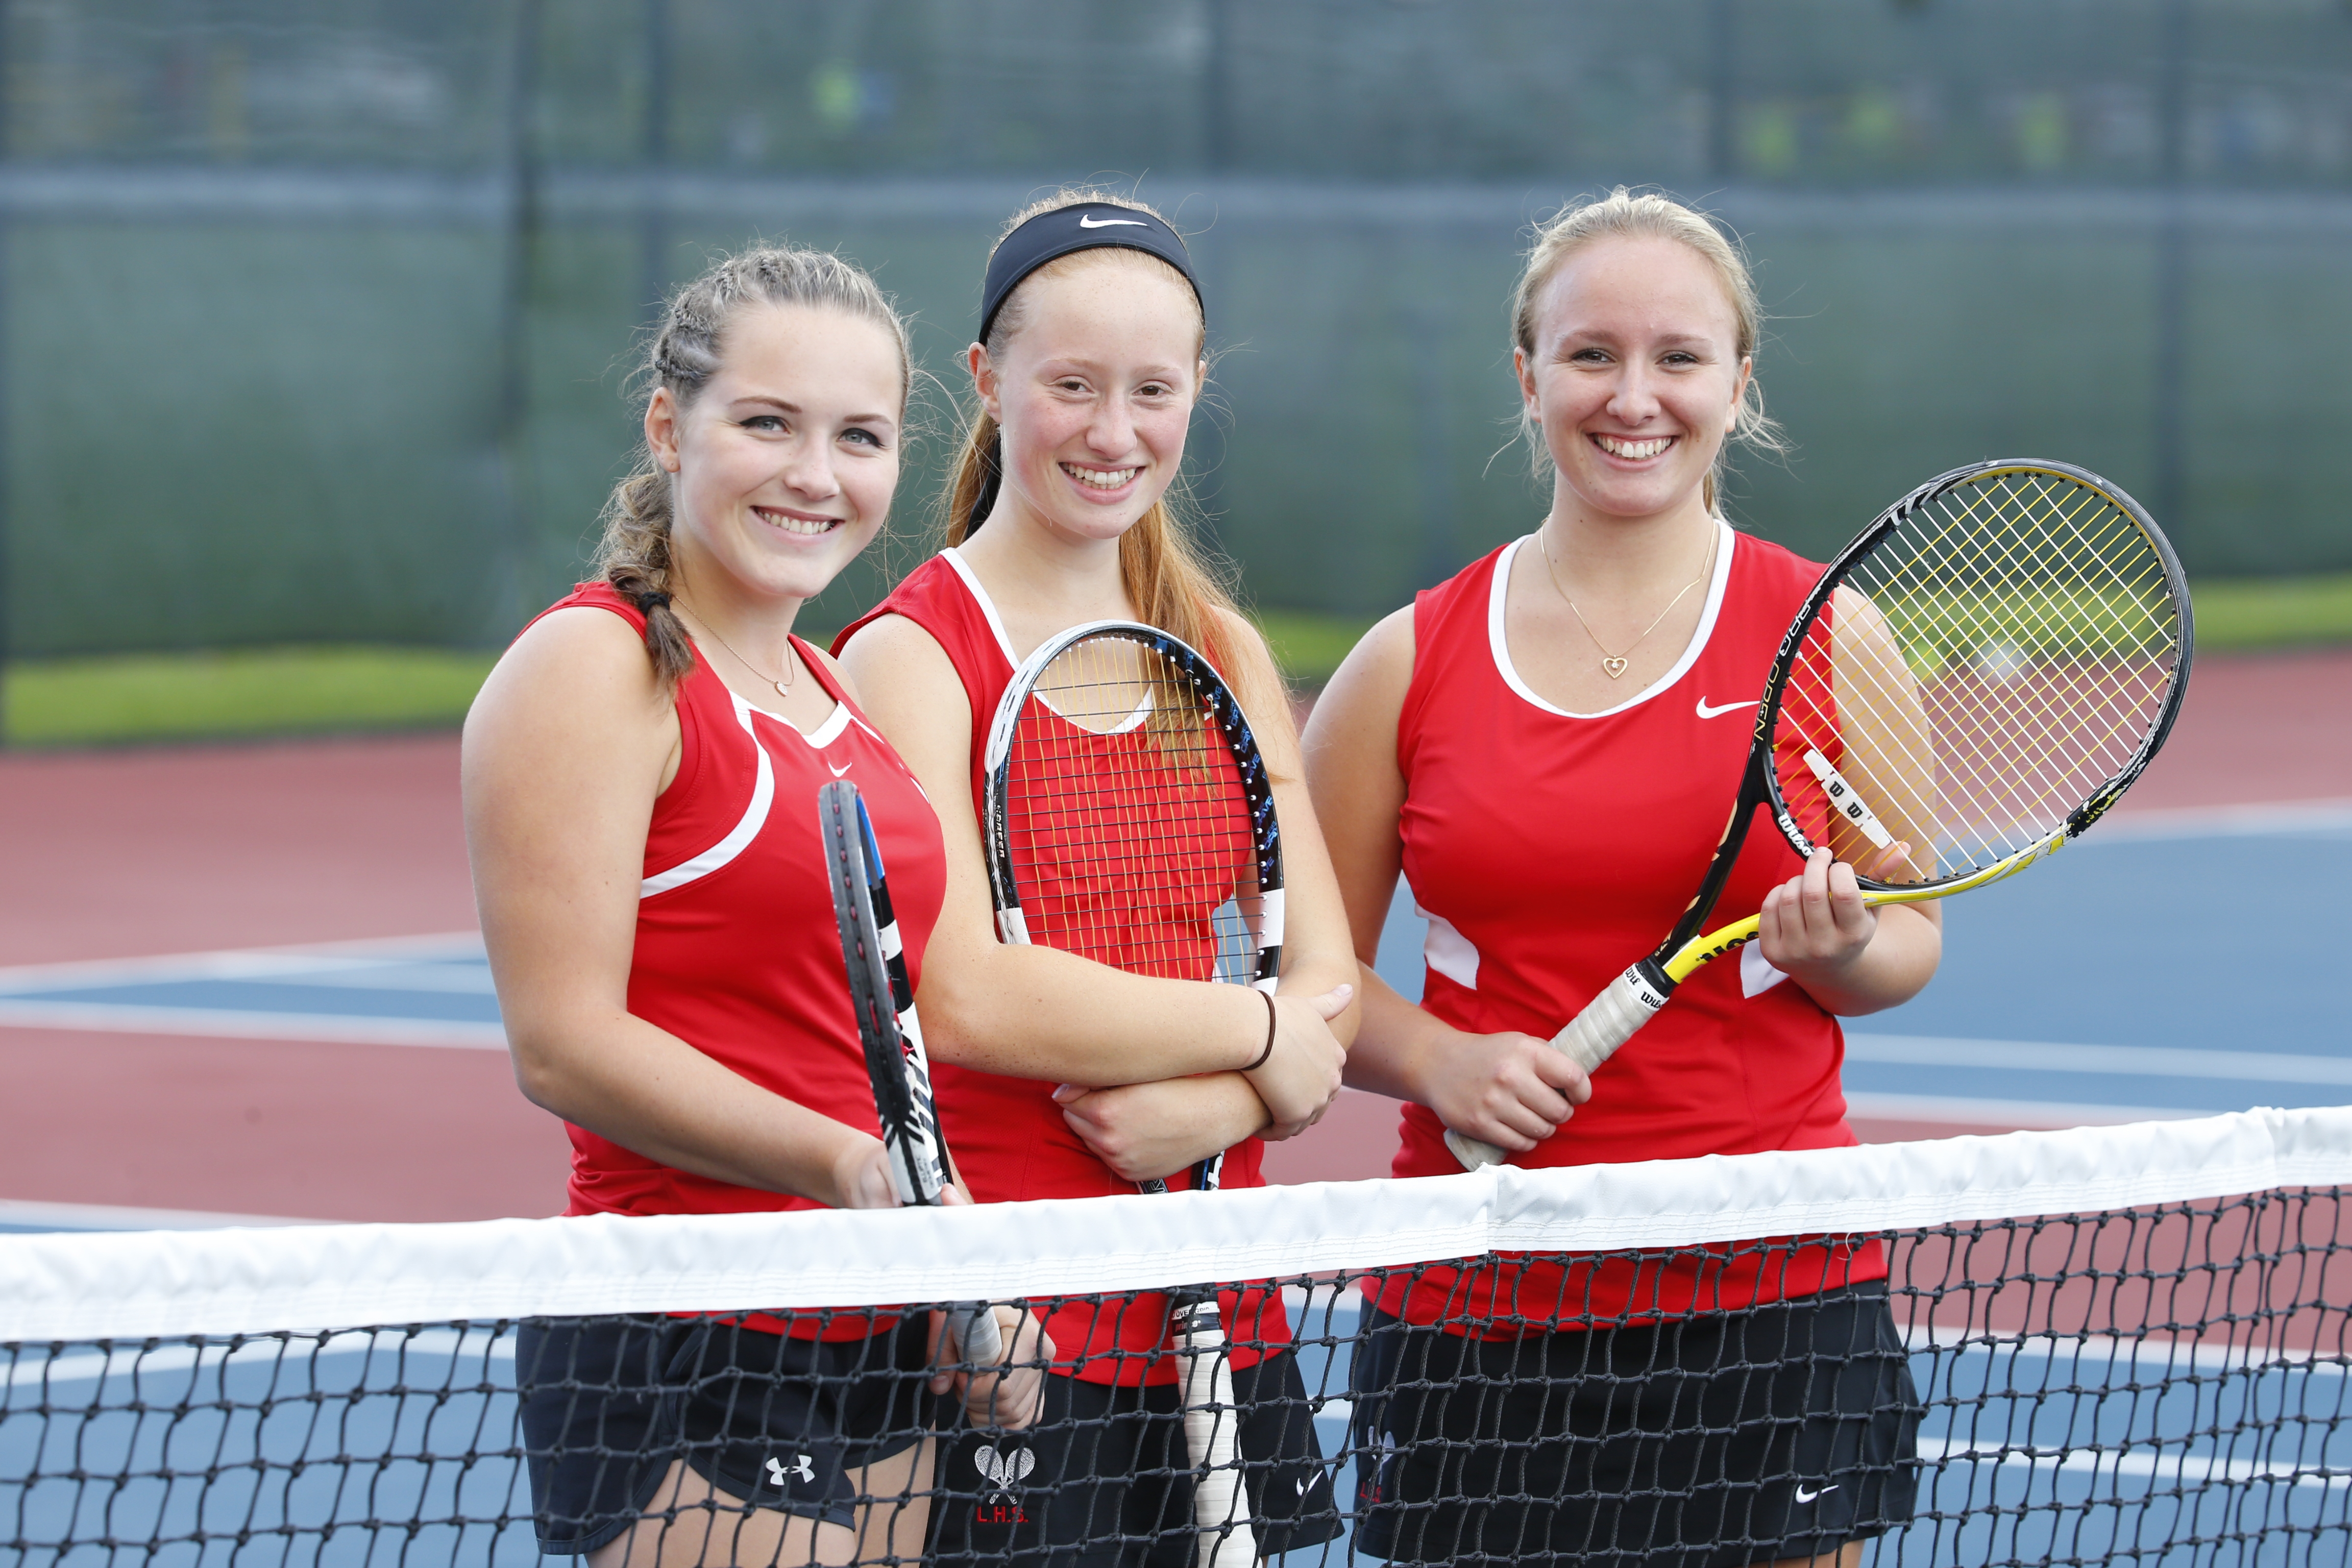 Lancaster singles players Tina Stasiuk, Paige Szymusiak and Brooke Szymusiak helped the Legends go unbeaten in ECIC I.